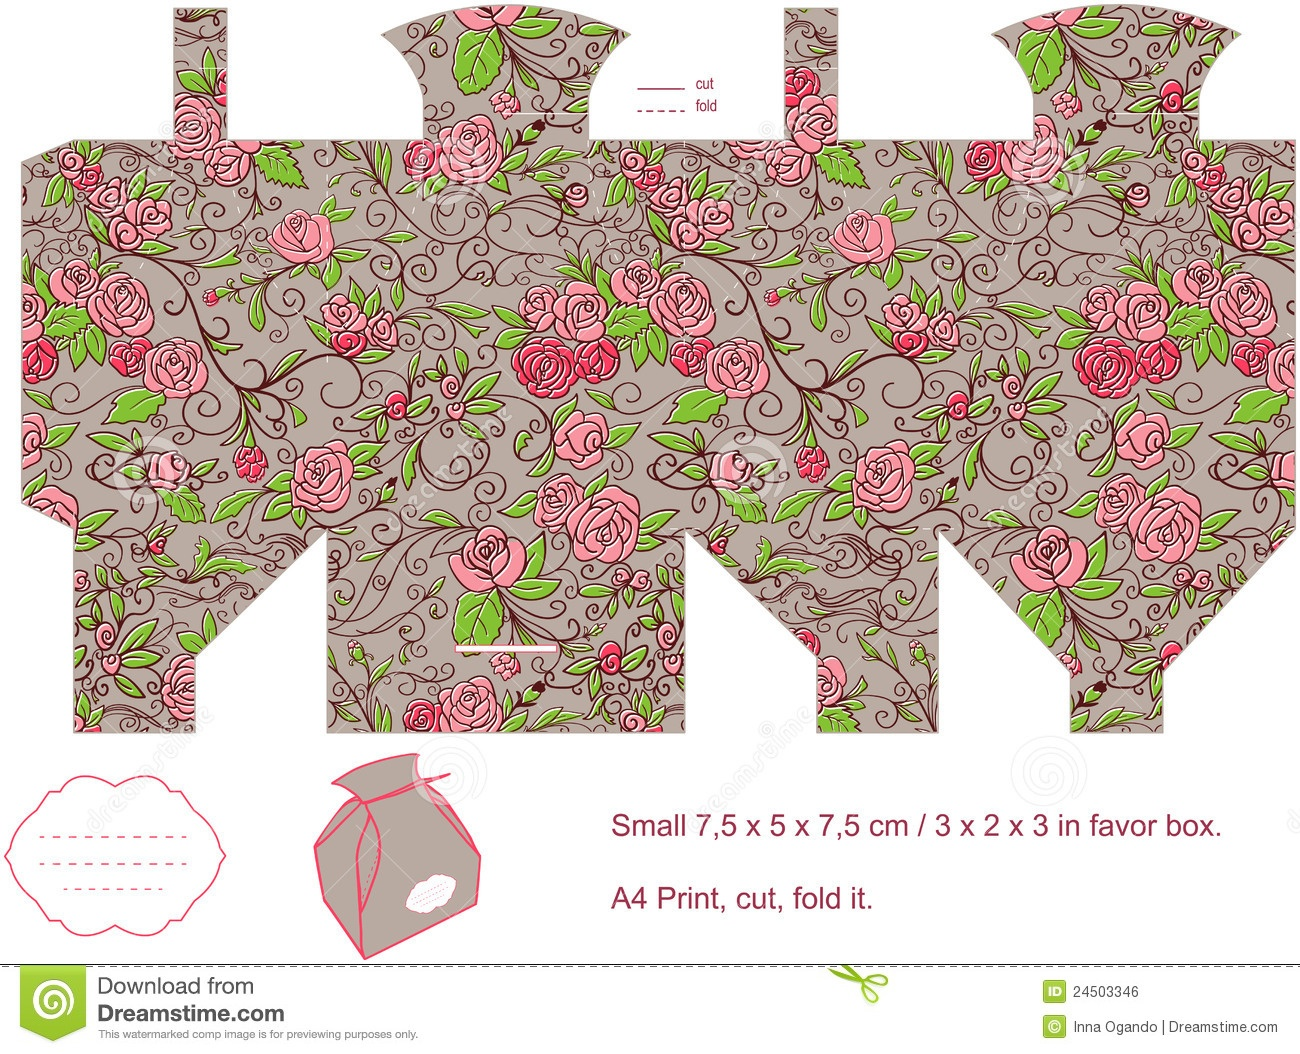 Gift Box Template Stock Vector. Illustration Of Floral - 24503346 - Gift Box Templates Free Printable